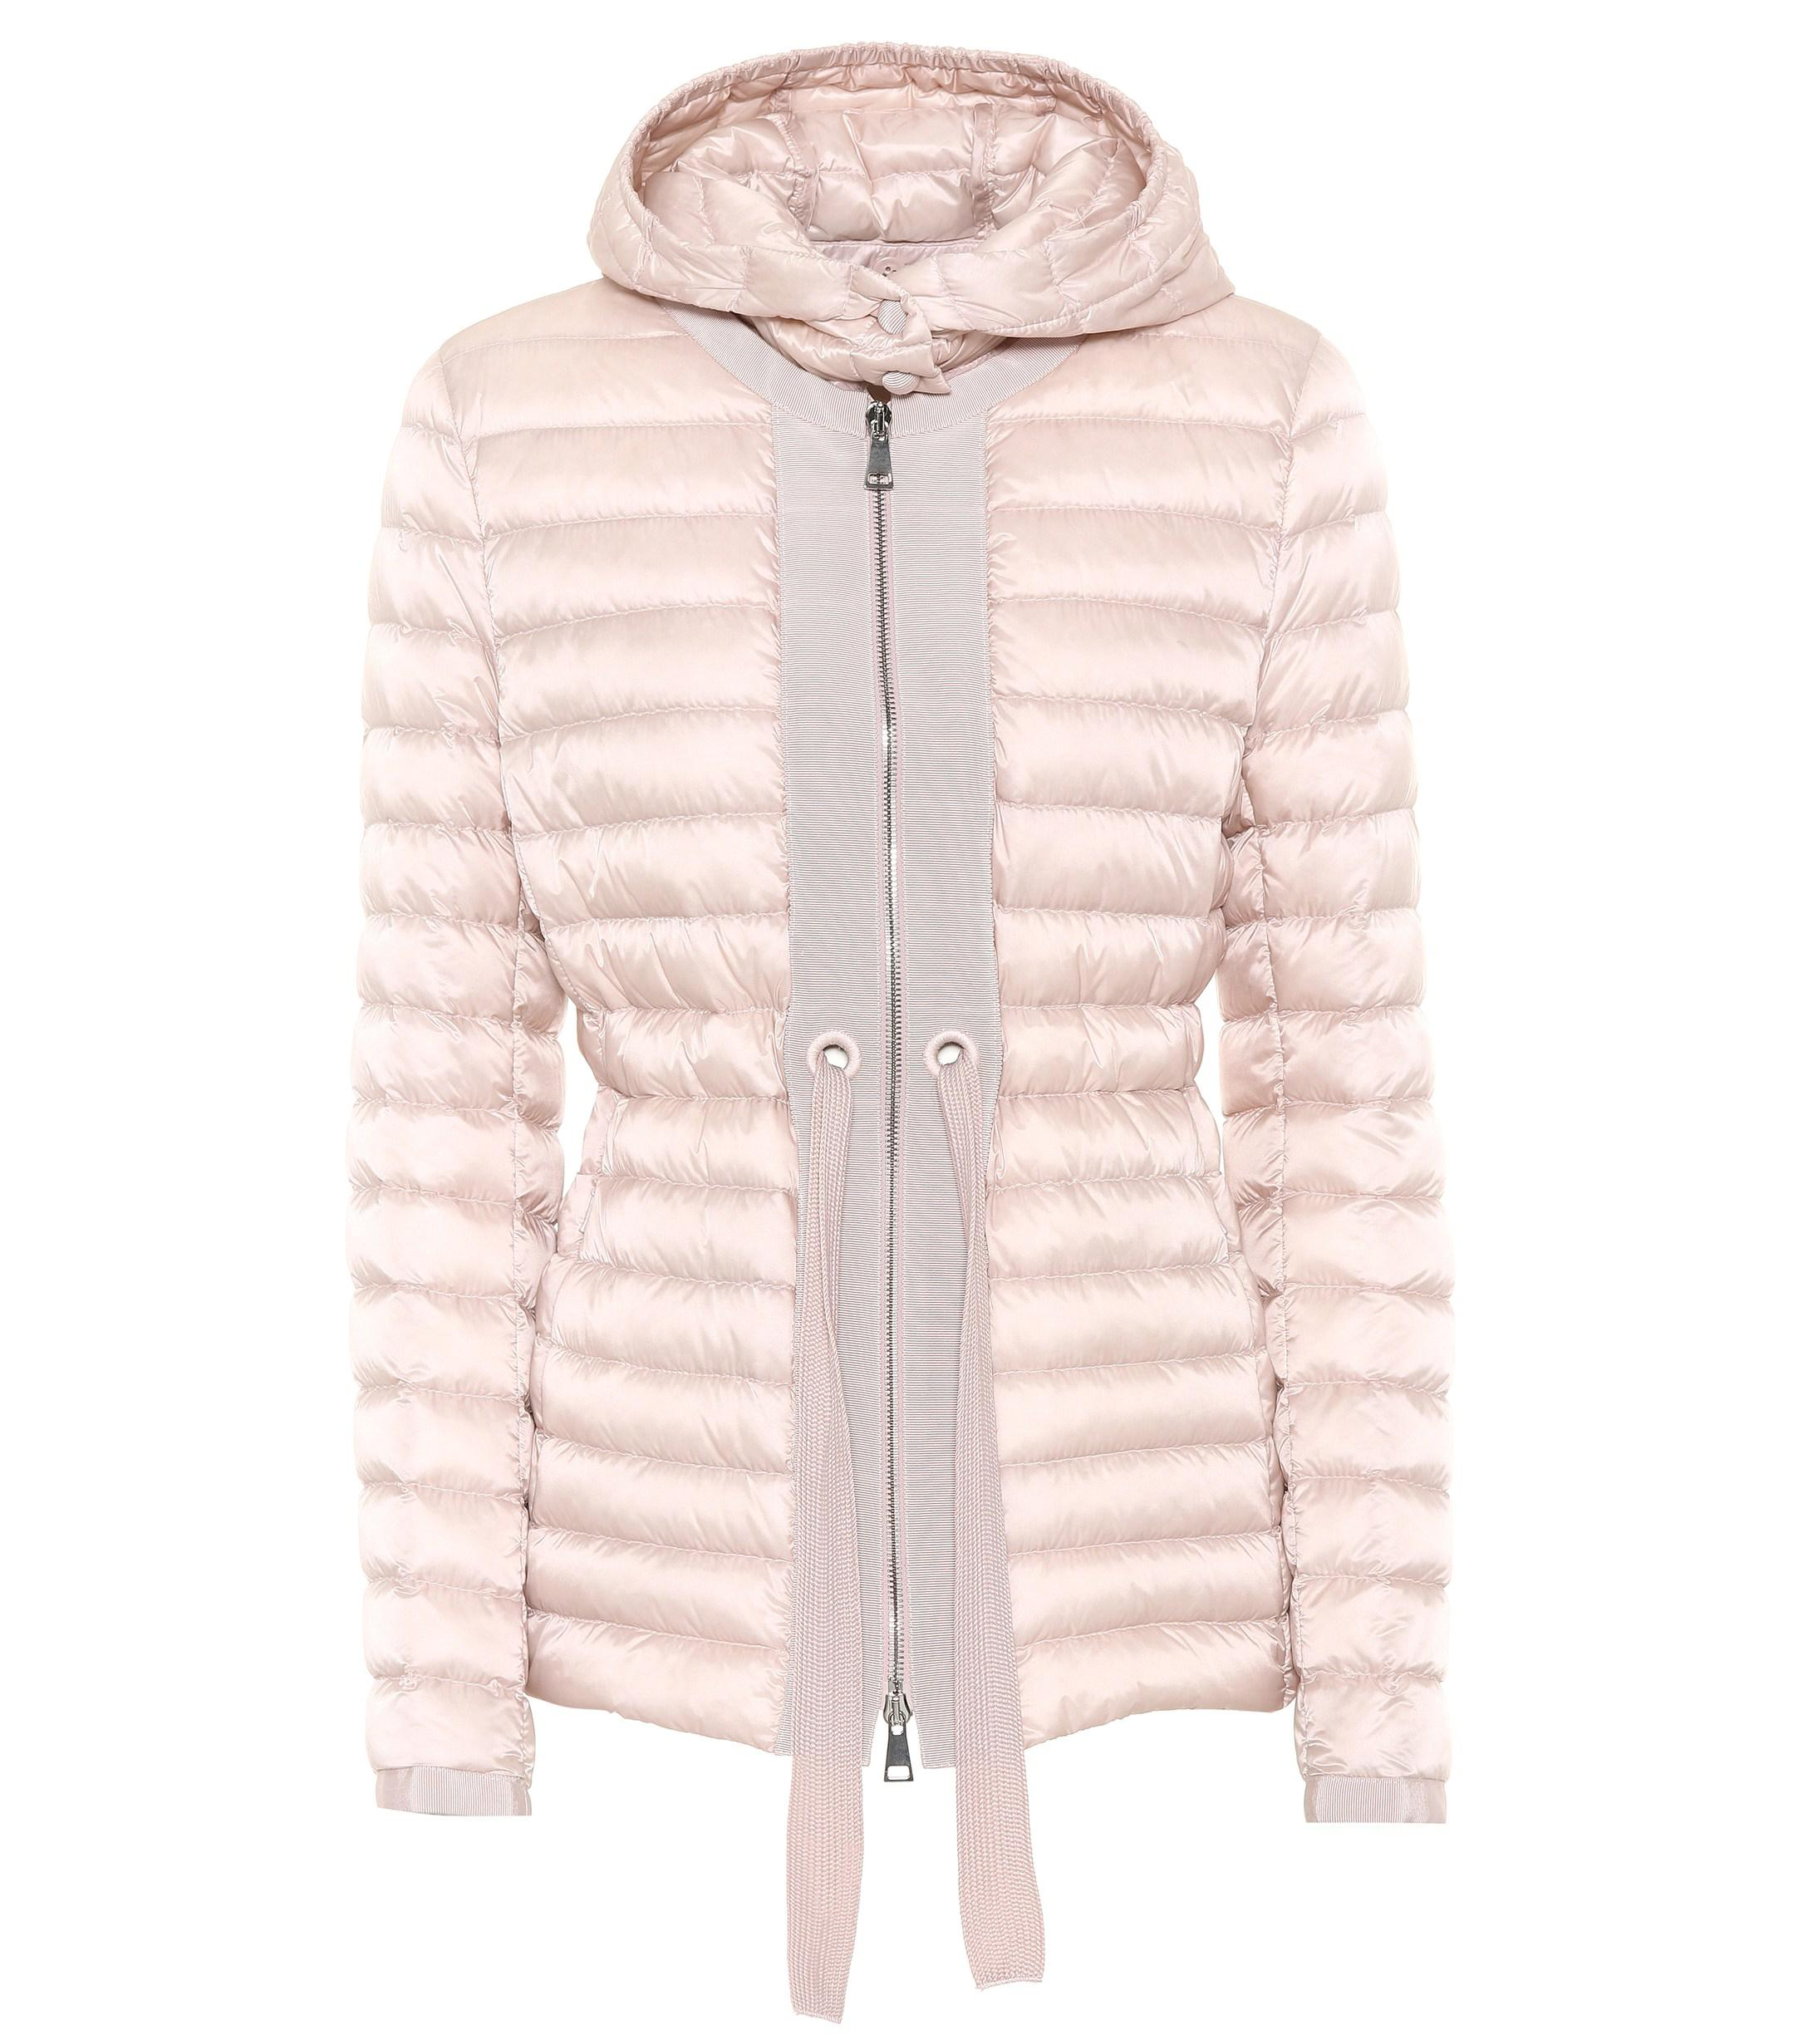 2b0dc7bf641c Lyst - Moncler Periclase Down Jacket in Pink